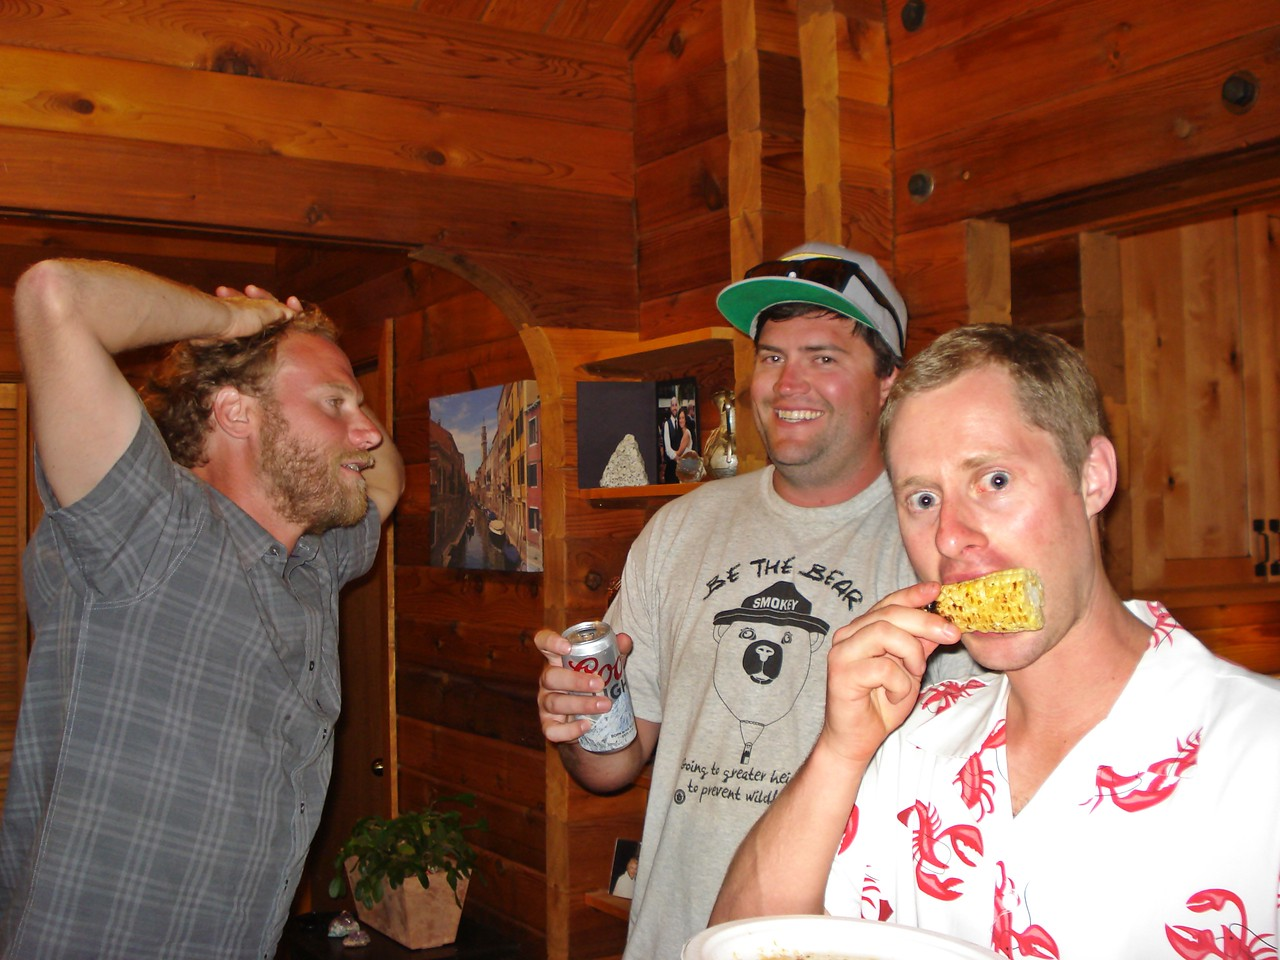 Phish Party 07-30-2017 at Andy and Trish's